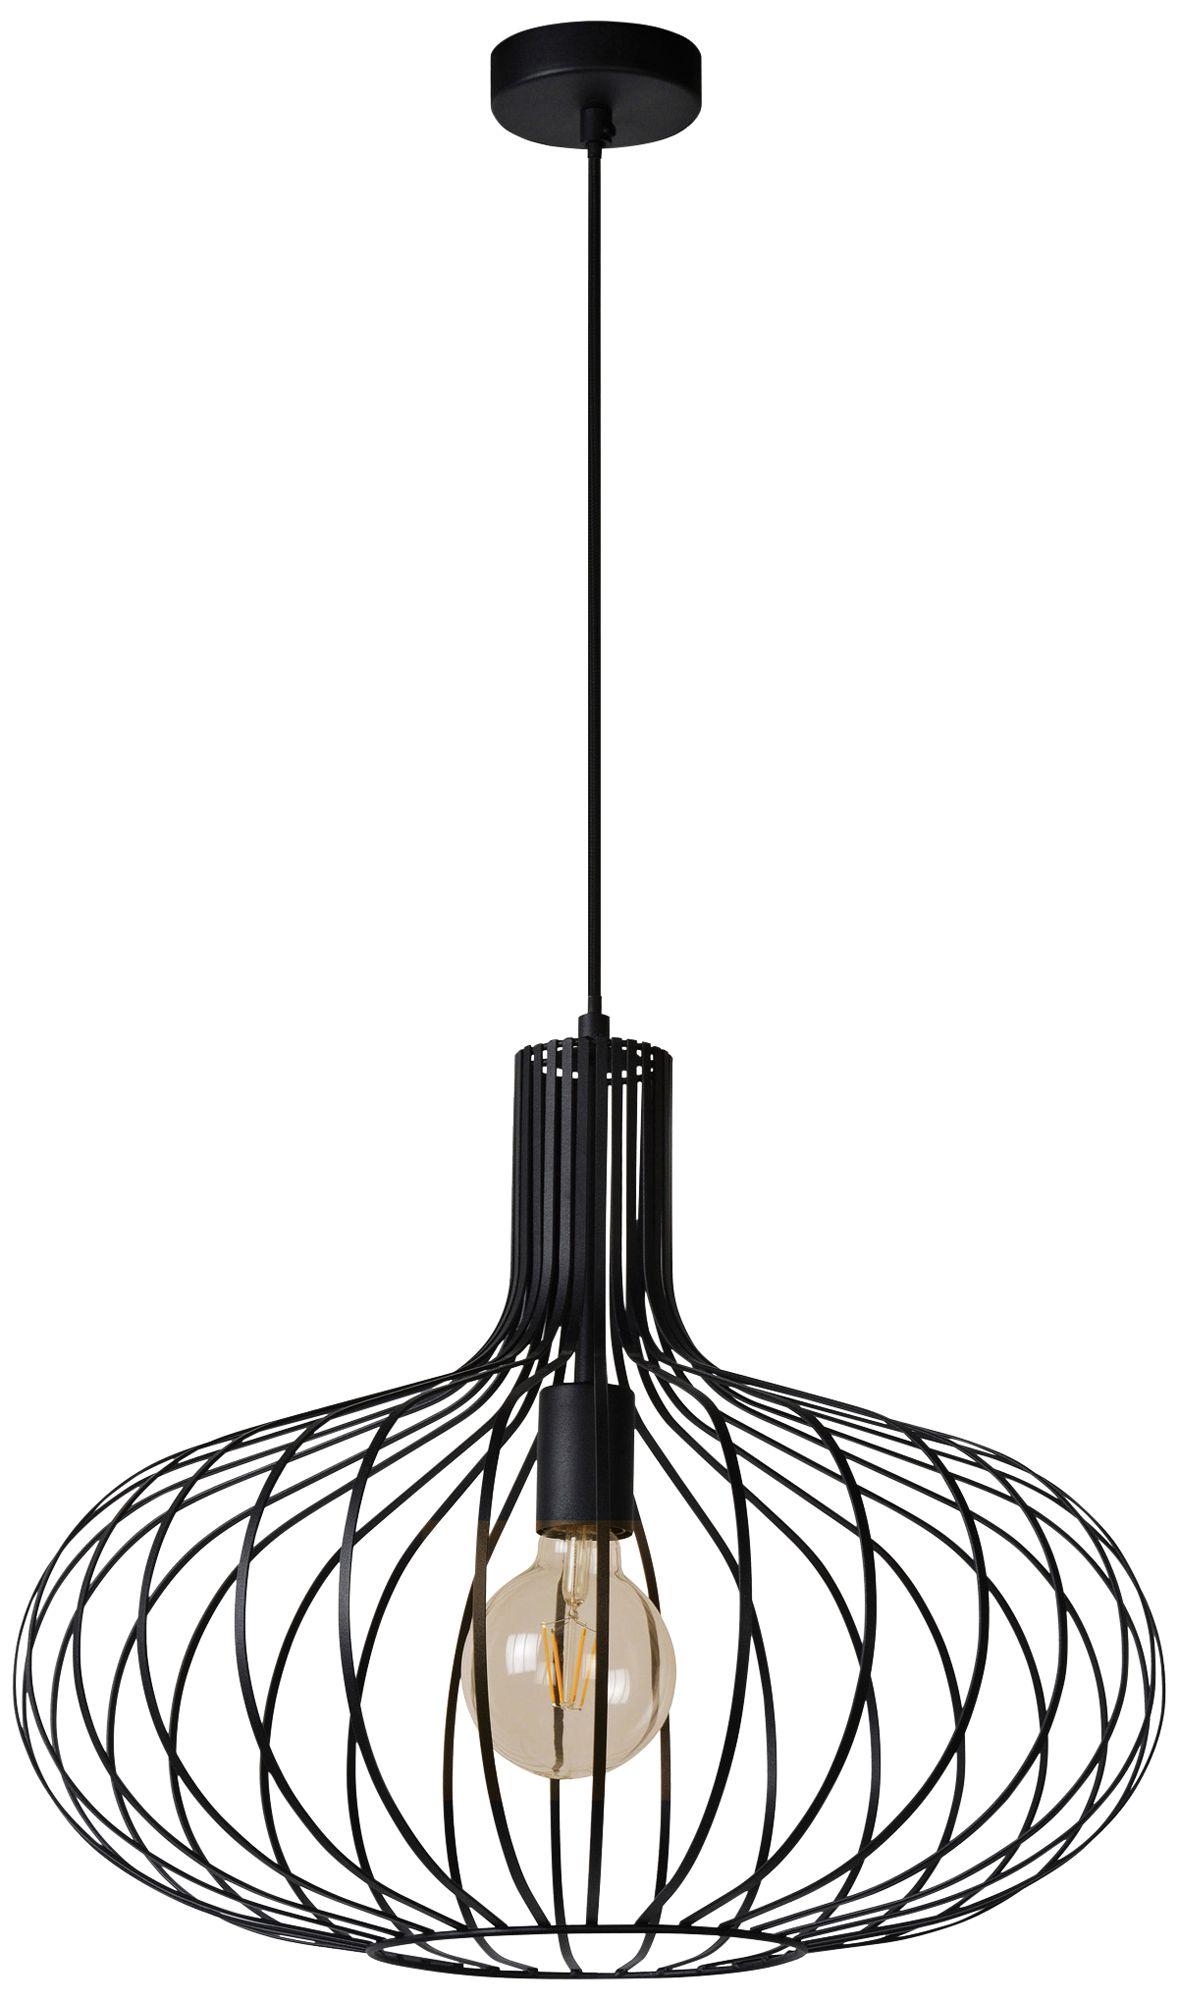 ione 19 3 4 wide textured black open cage pendant light